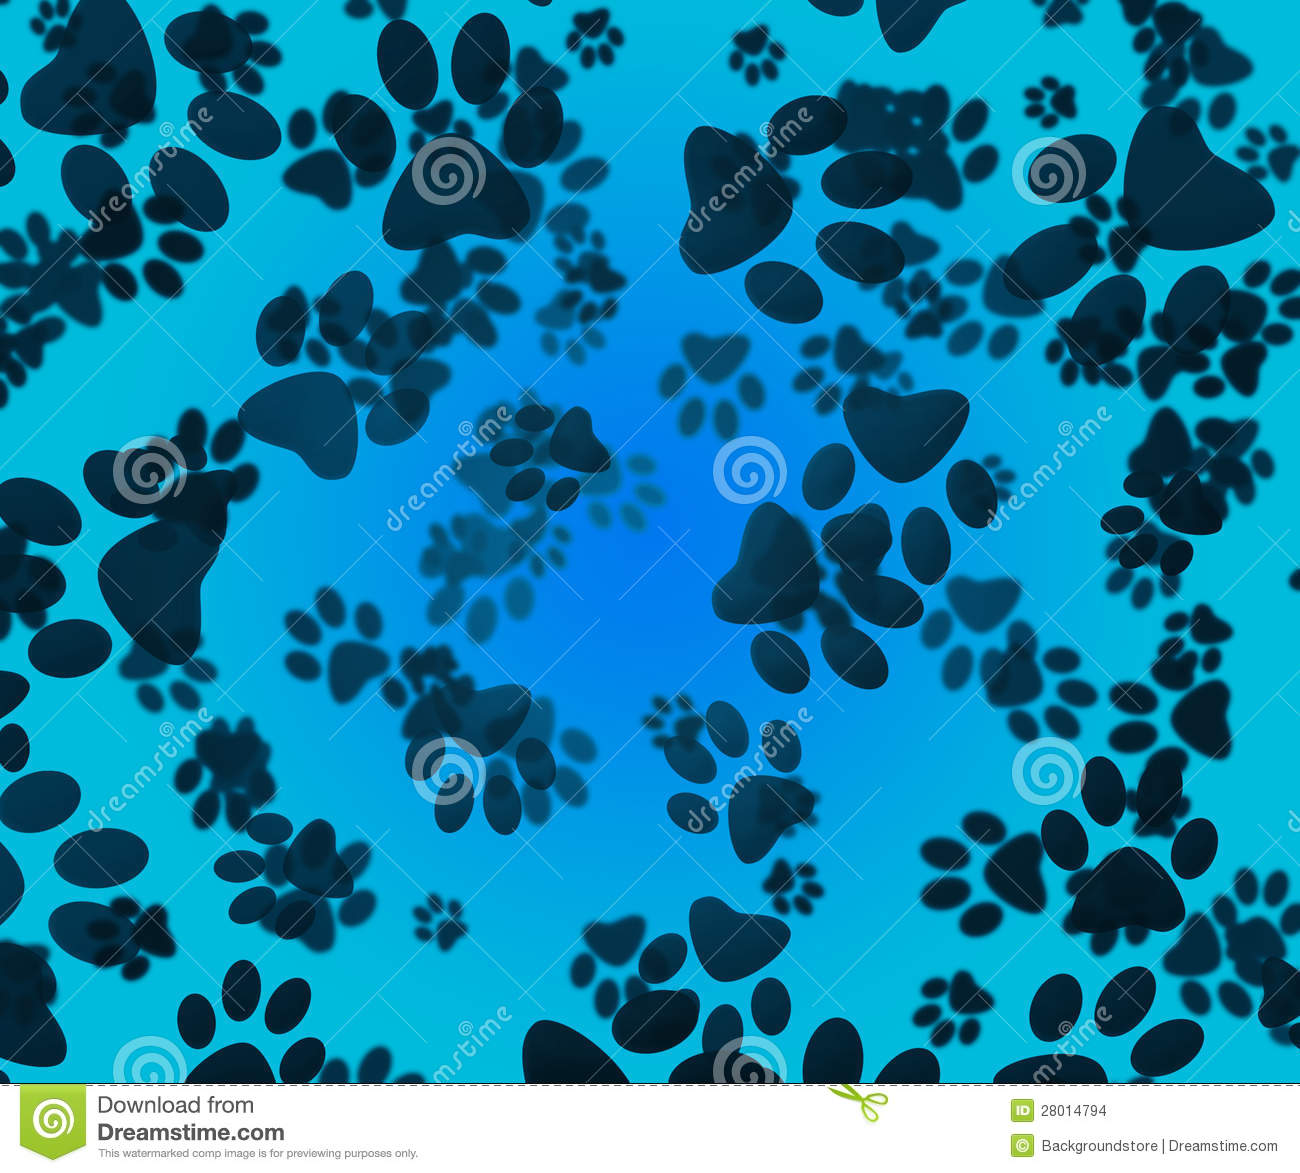 Dog Paws Blue Background Stock Images - Image: 28014794